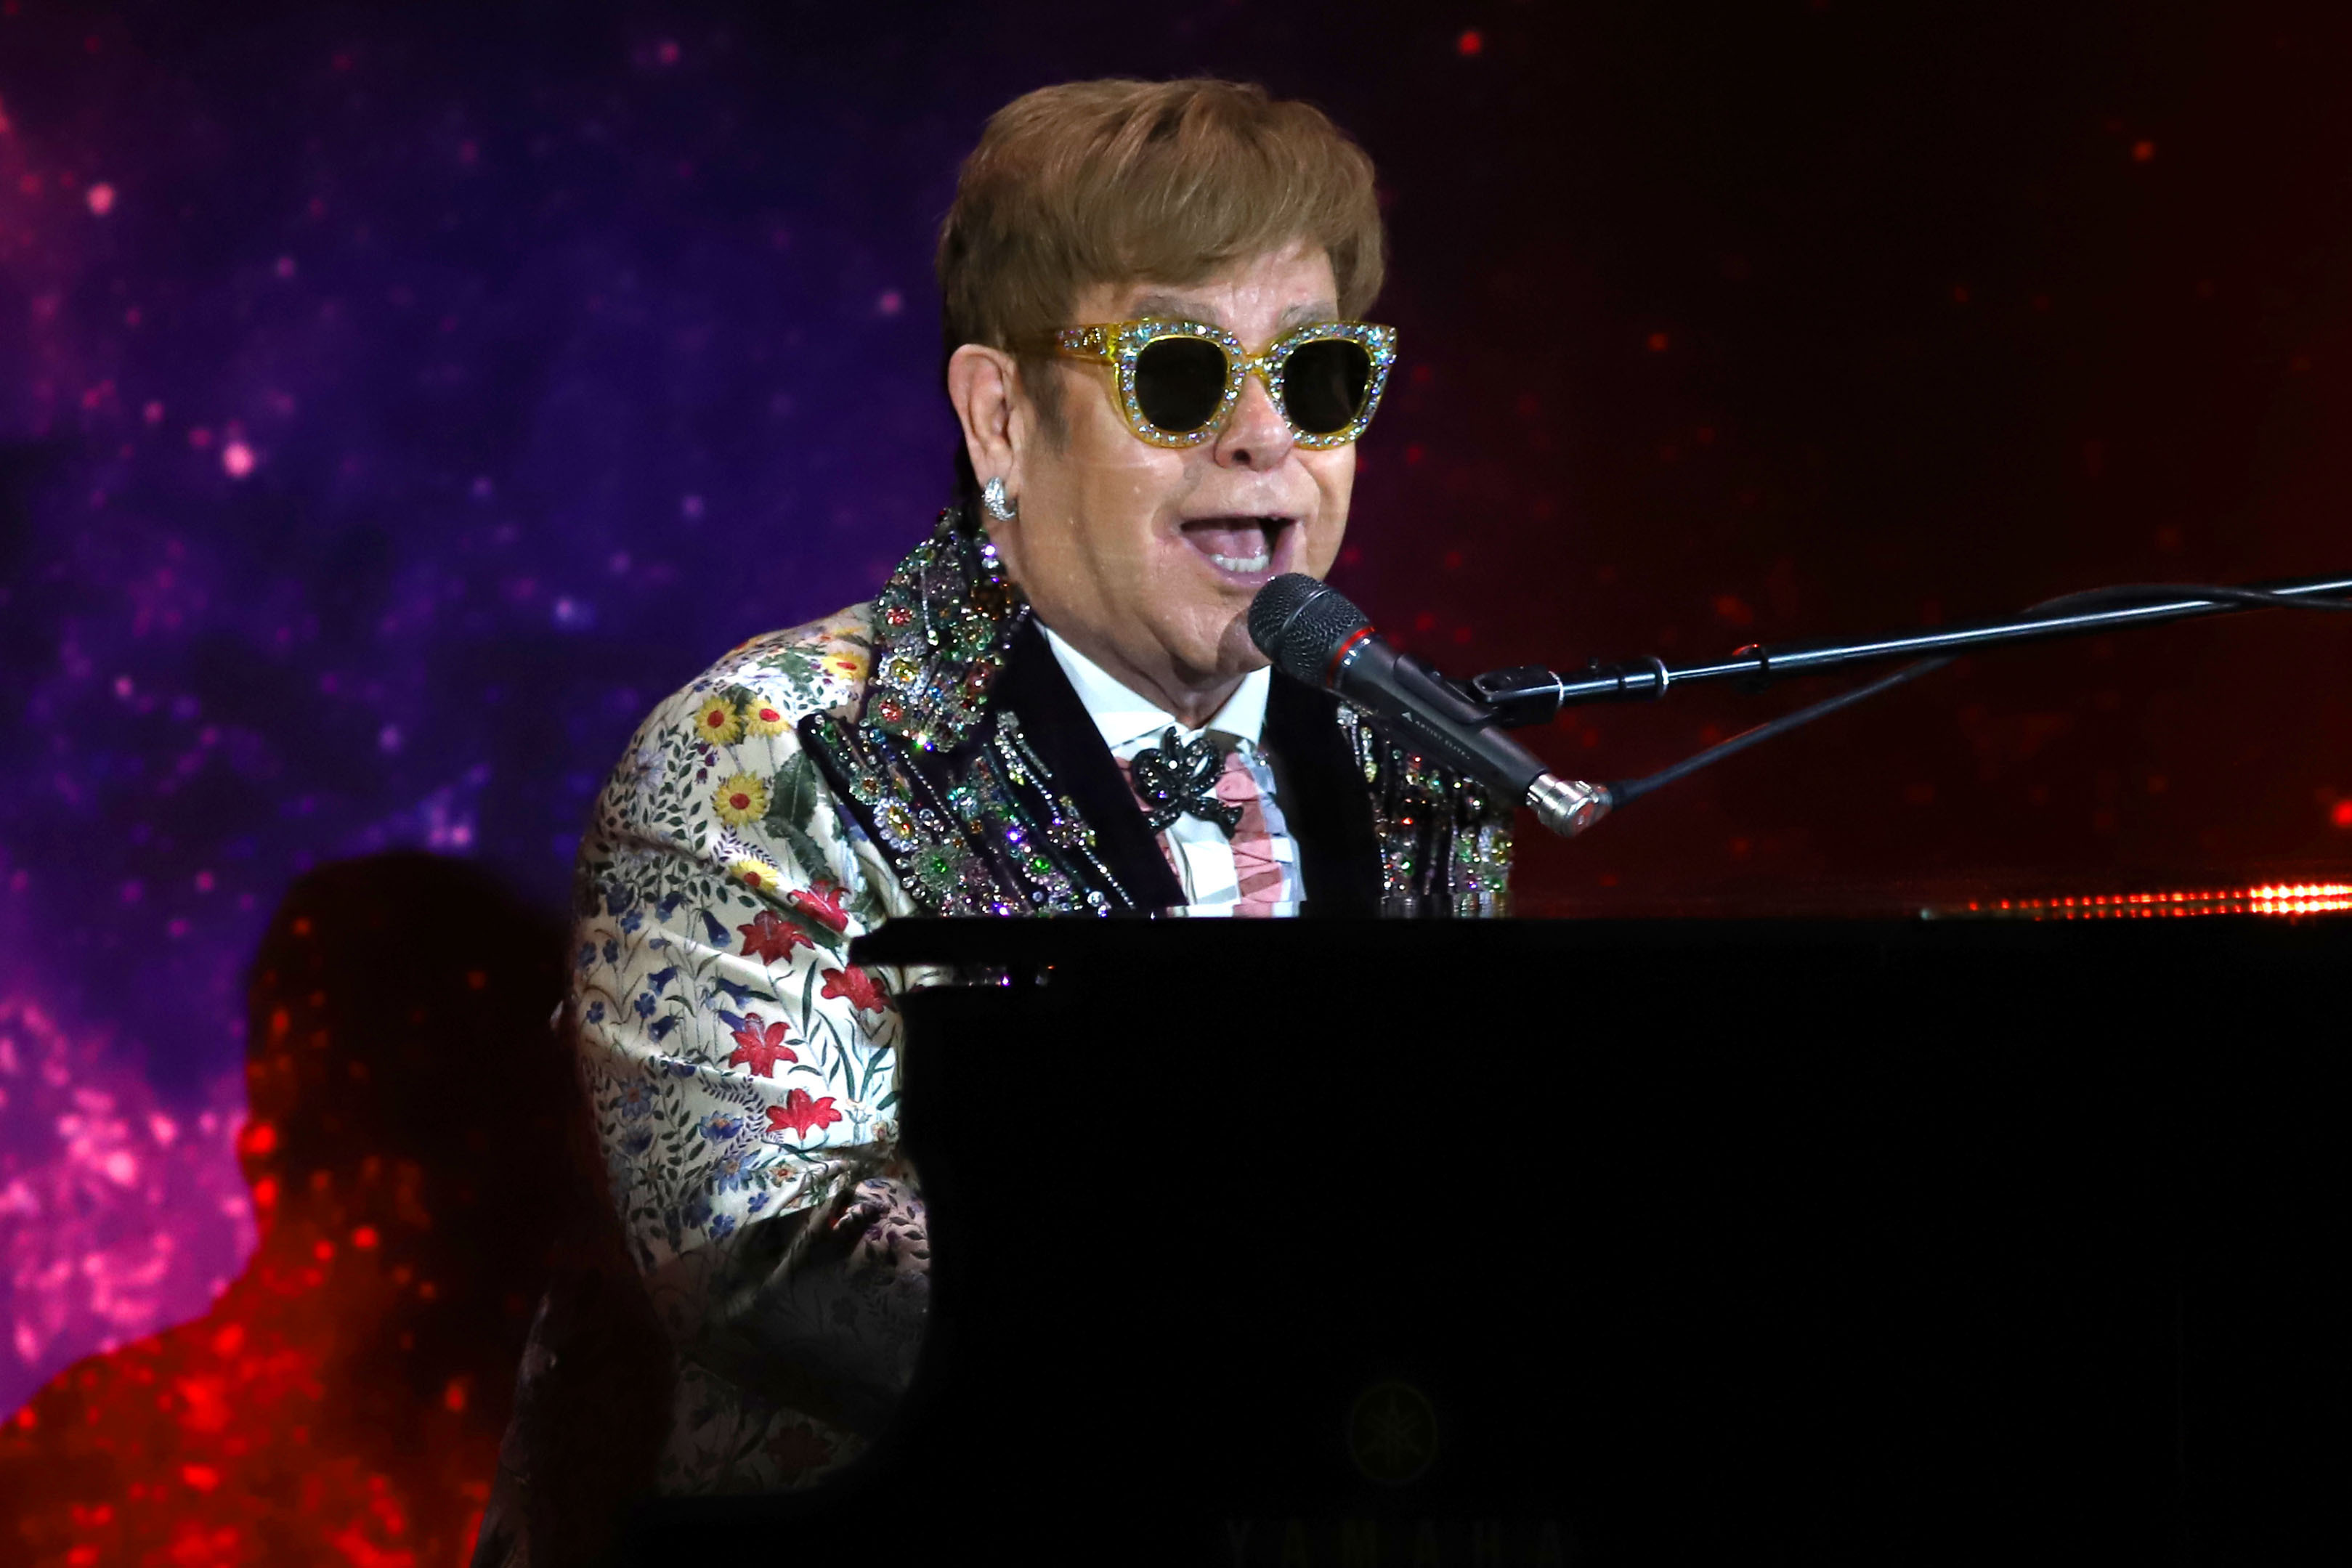 Elton John expected to announce retirement from touring